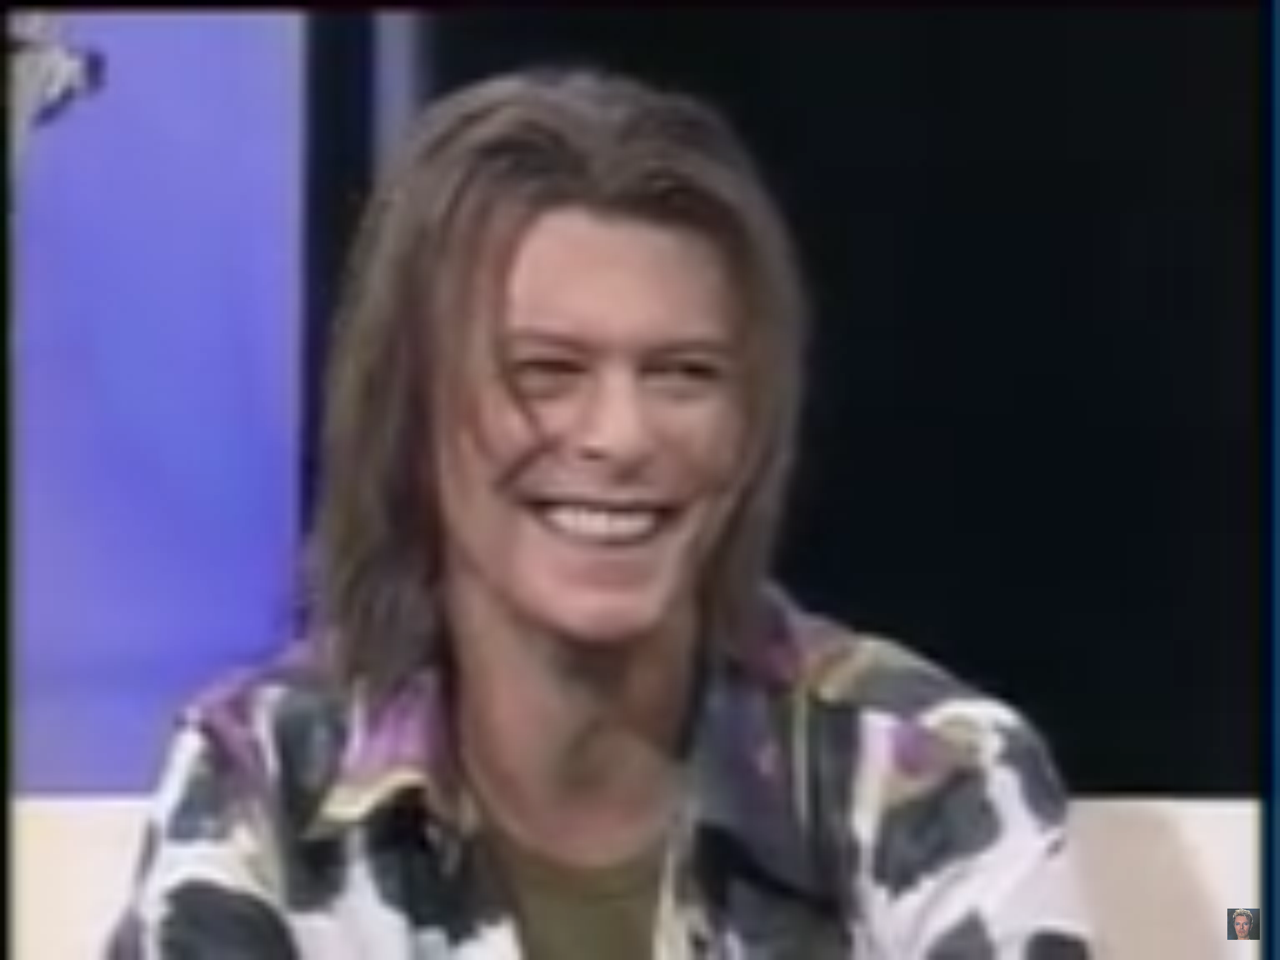 David Bowies Glorious Long Hair 1999 2000 David Bowie Bowie Rosie Odonnell